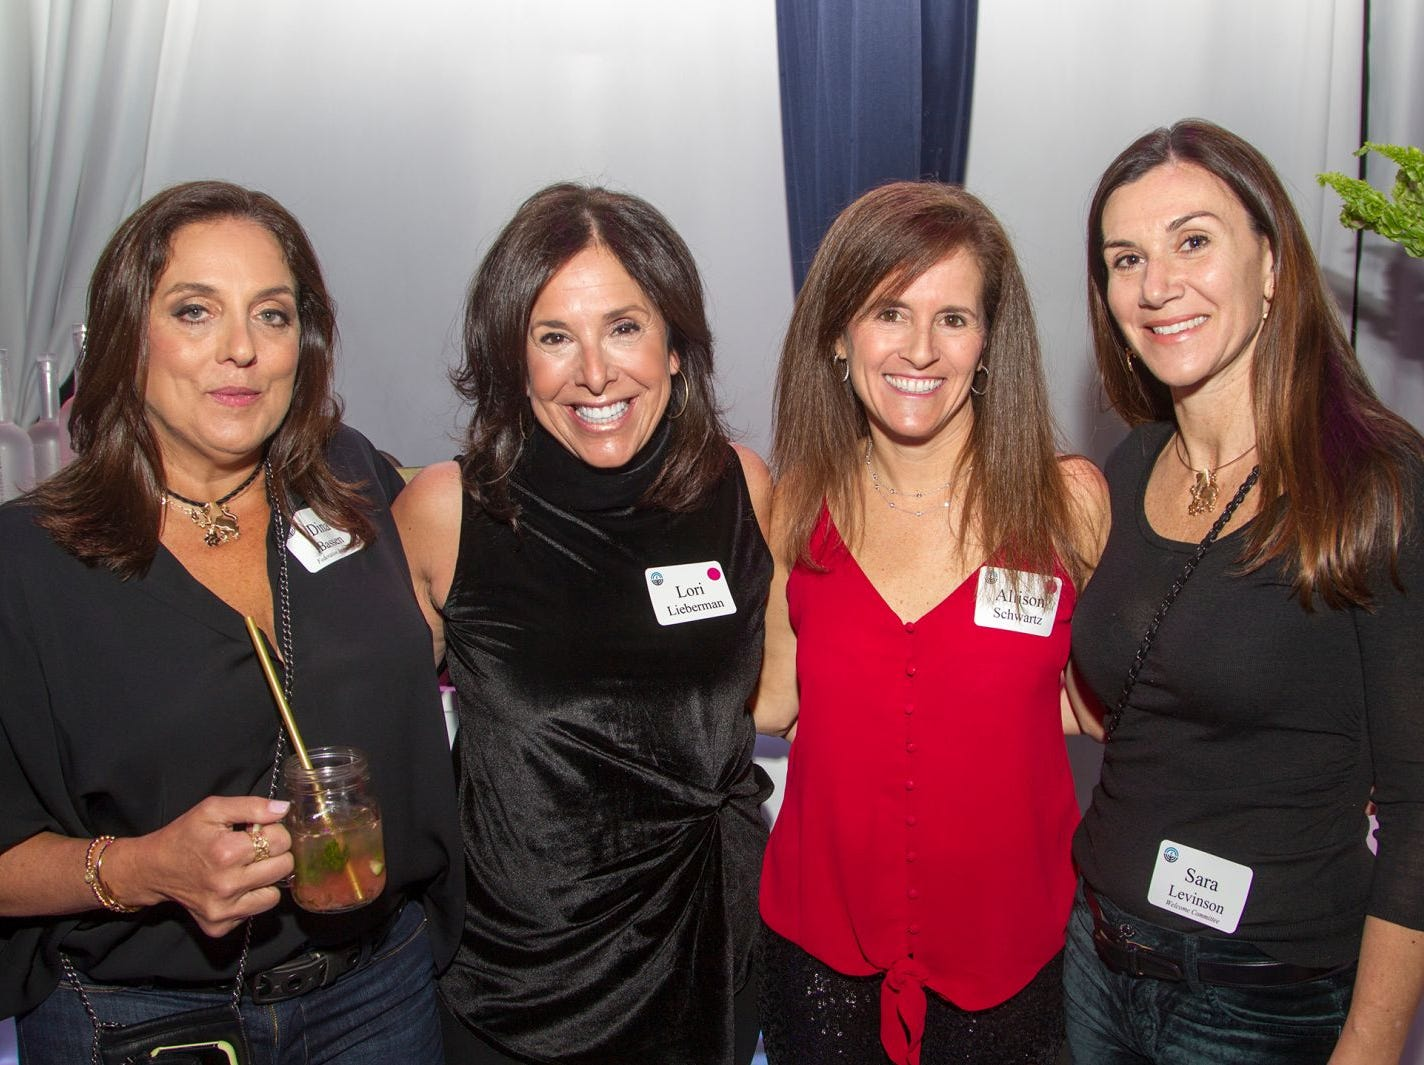 Dina Bassen, Lori Lieberman, Allison Schwartz, Sara Levinson. Jewish Federation of Northern New Jersey held its first Girl's Night Out dance party at Space in Englewood. 01/24/2019